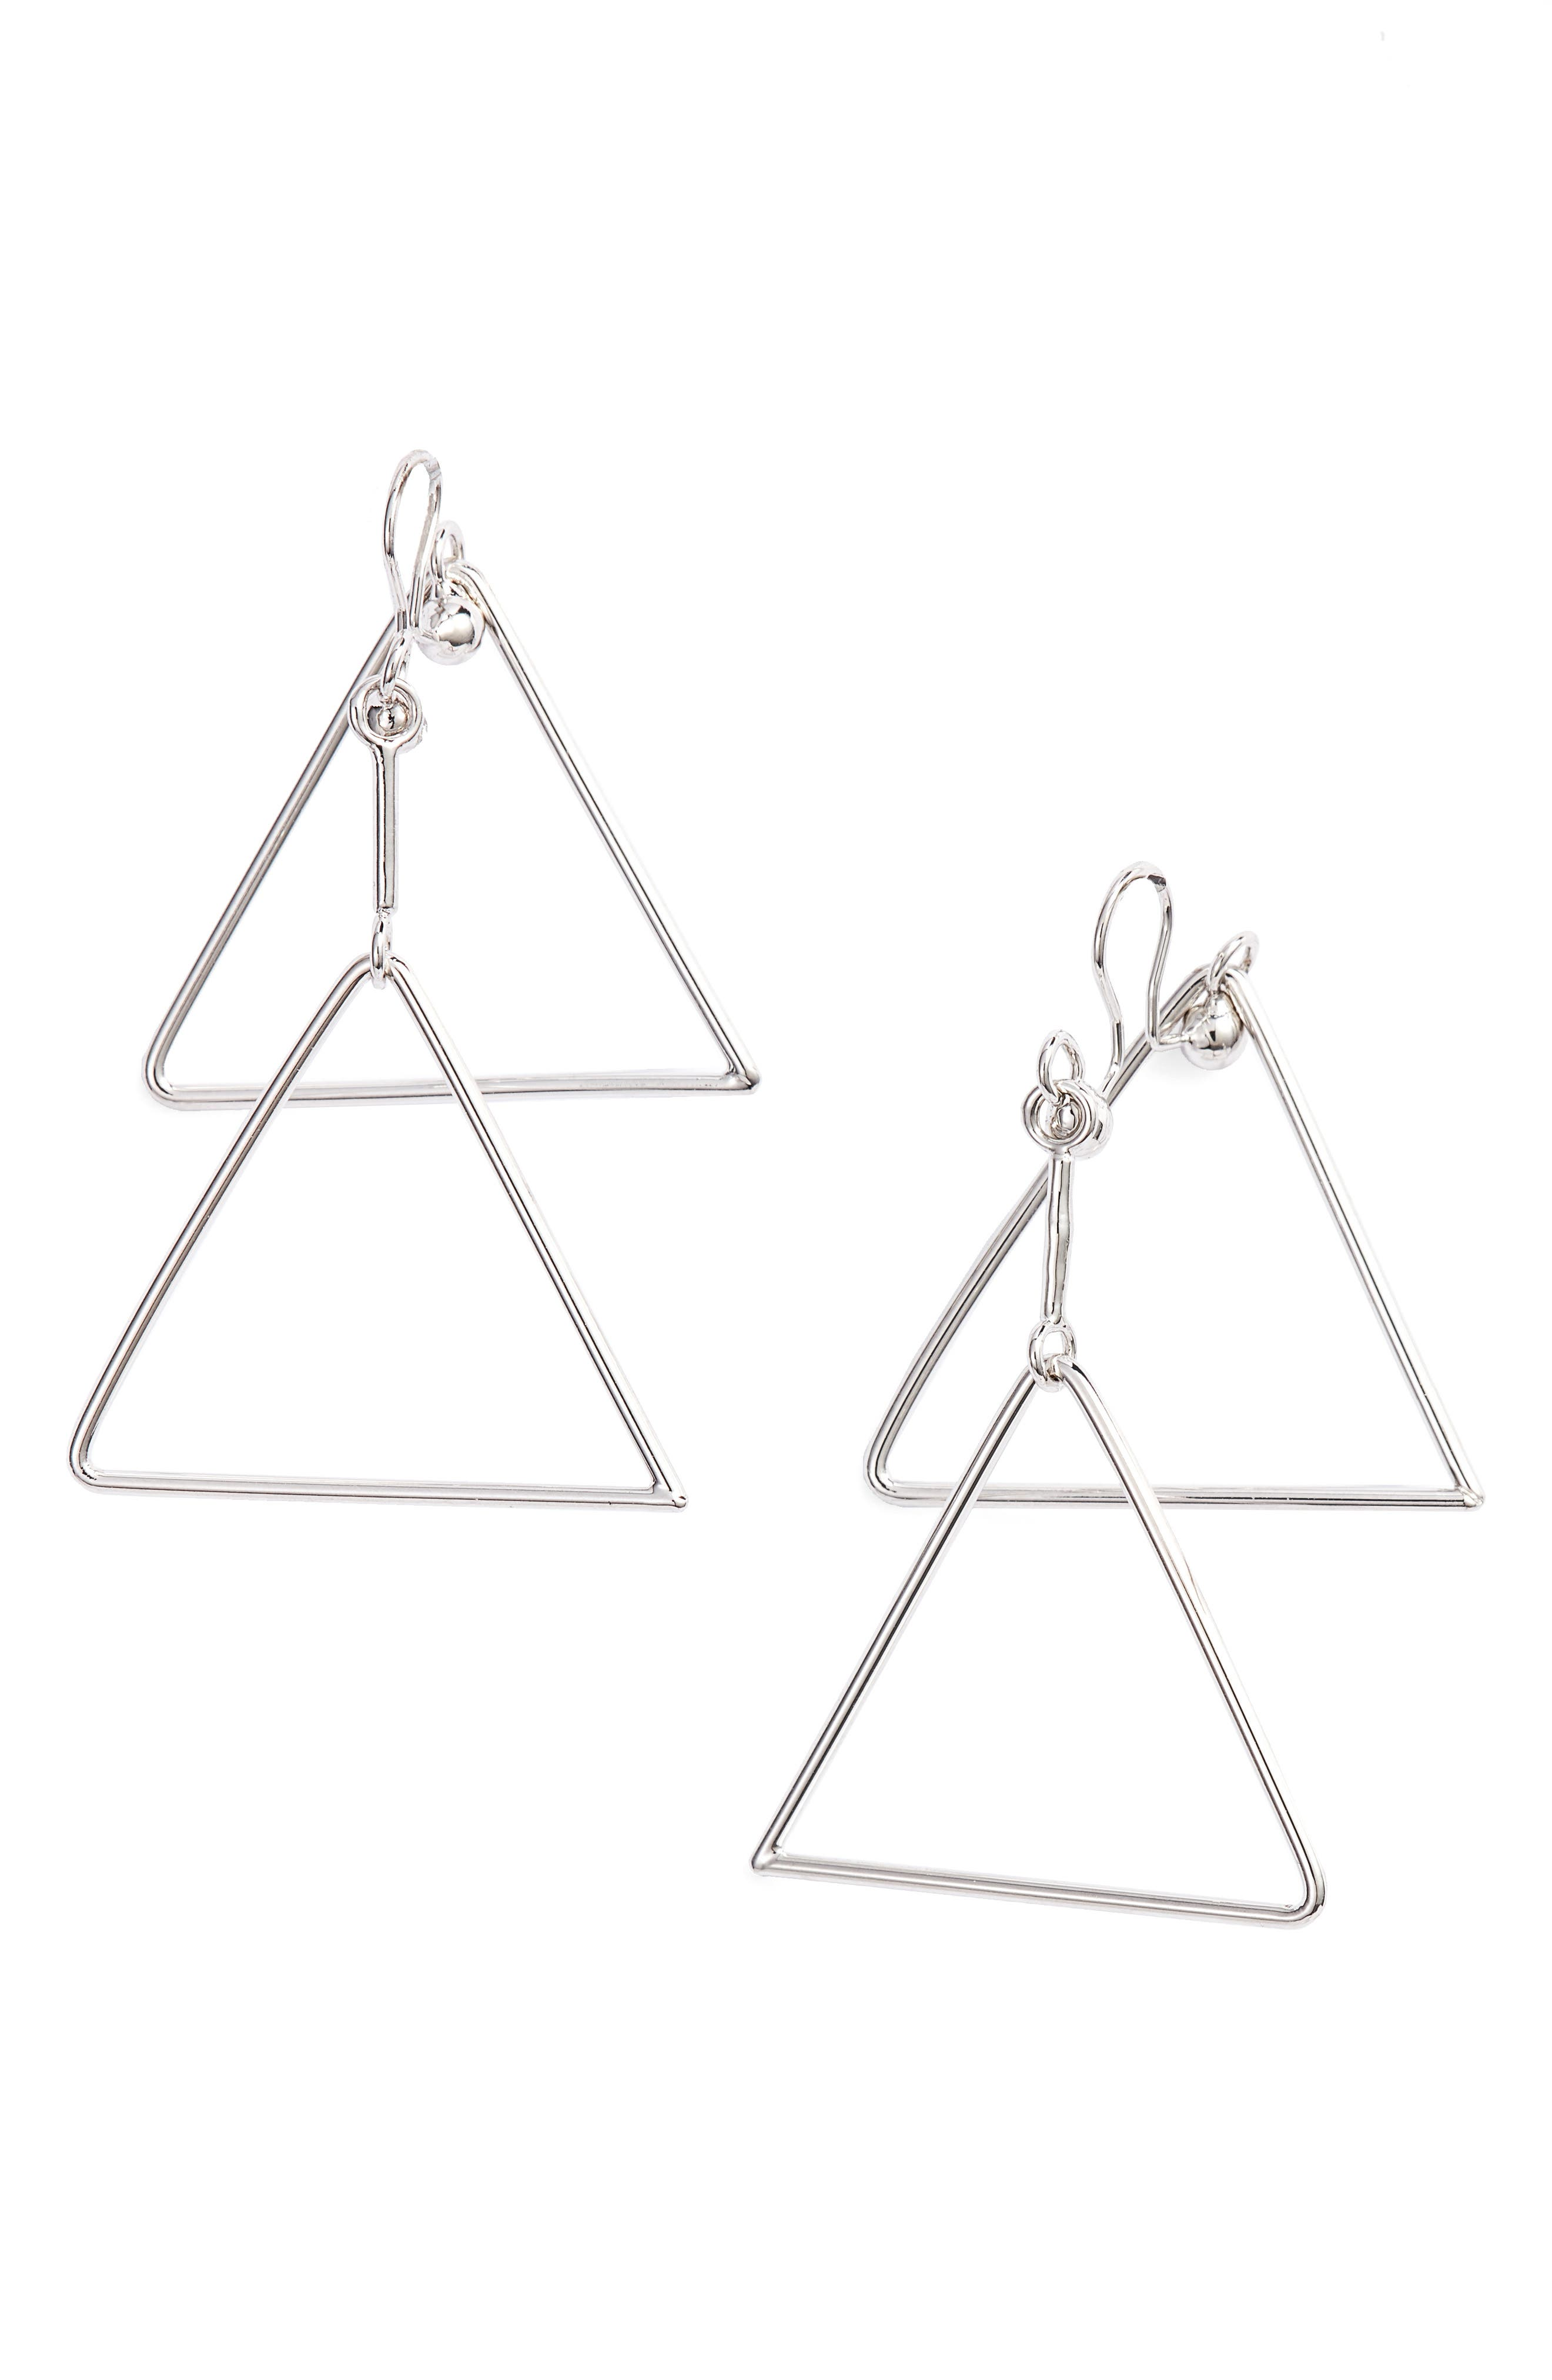 Triangle Clip Earrings,                             Main thumbnail 1, color,                             041